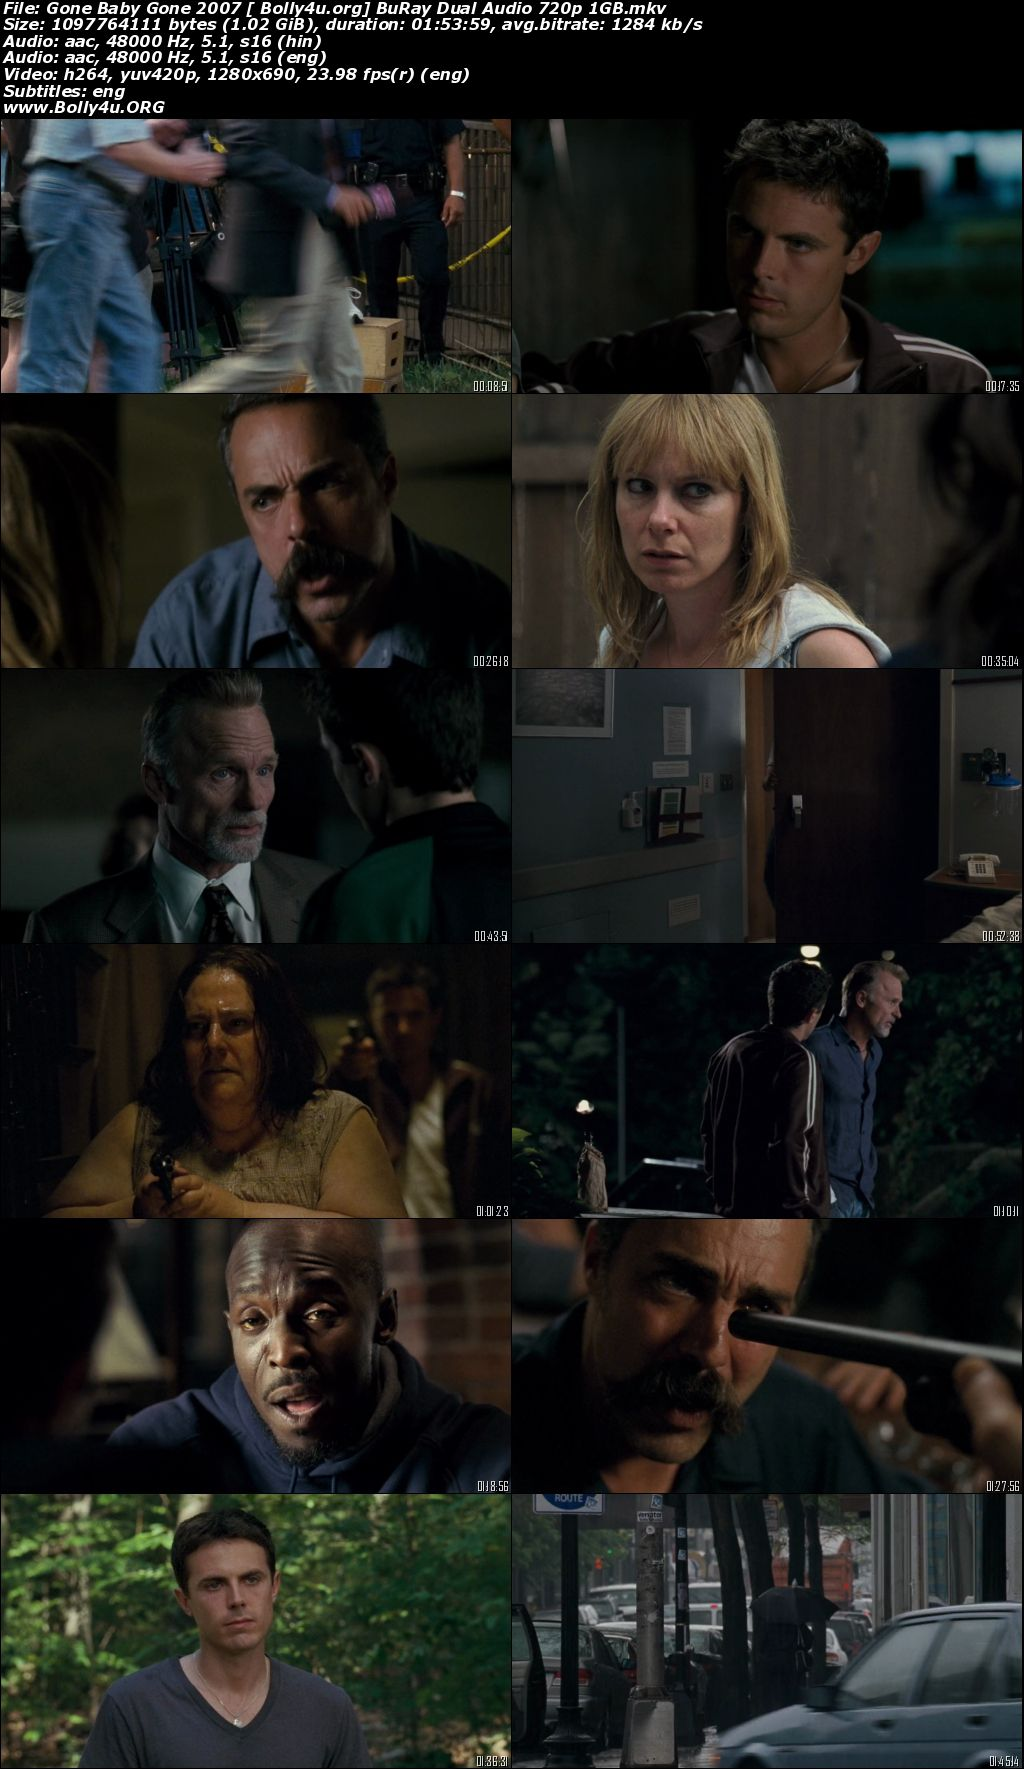 Gone Baby Gone 2007 BluRay 1GB Hindi Dual Audio ORG 720p Download